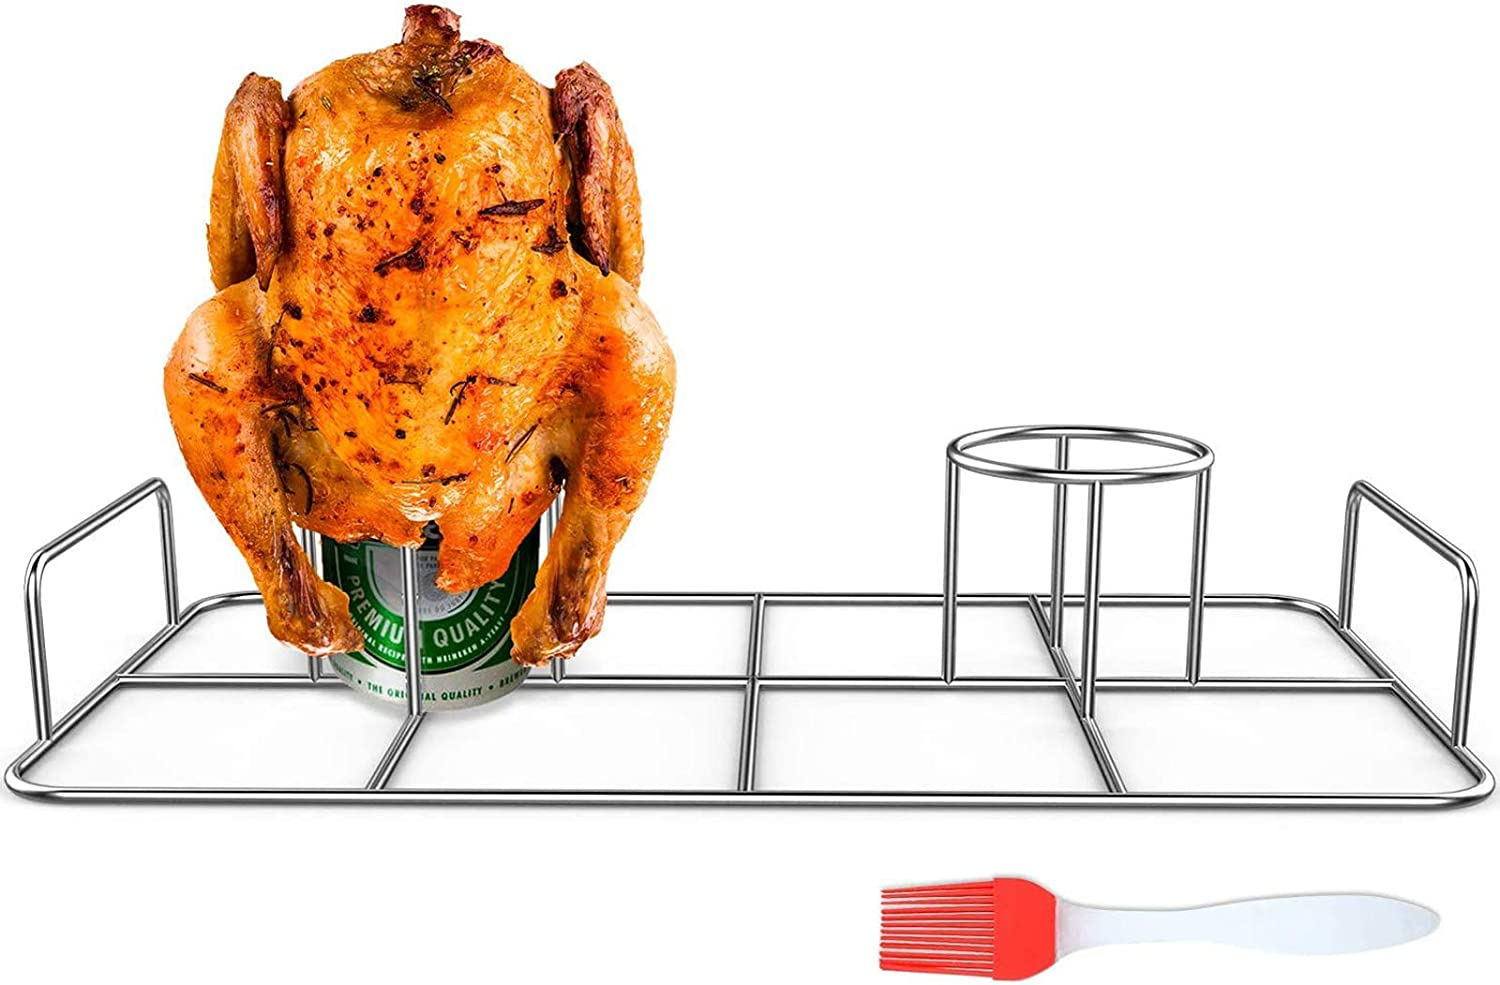 RUSFOL Double Beercan Chicken Rack with a Silicone Oil Brush, Stainless Steel Twin Chicken Stand for Smoker and Grill,Cook 2 Chicken Together